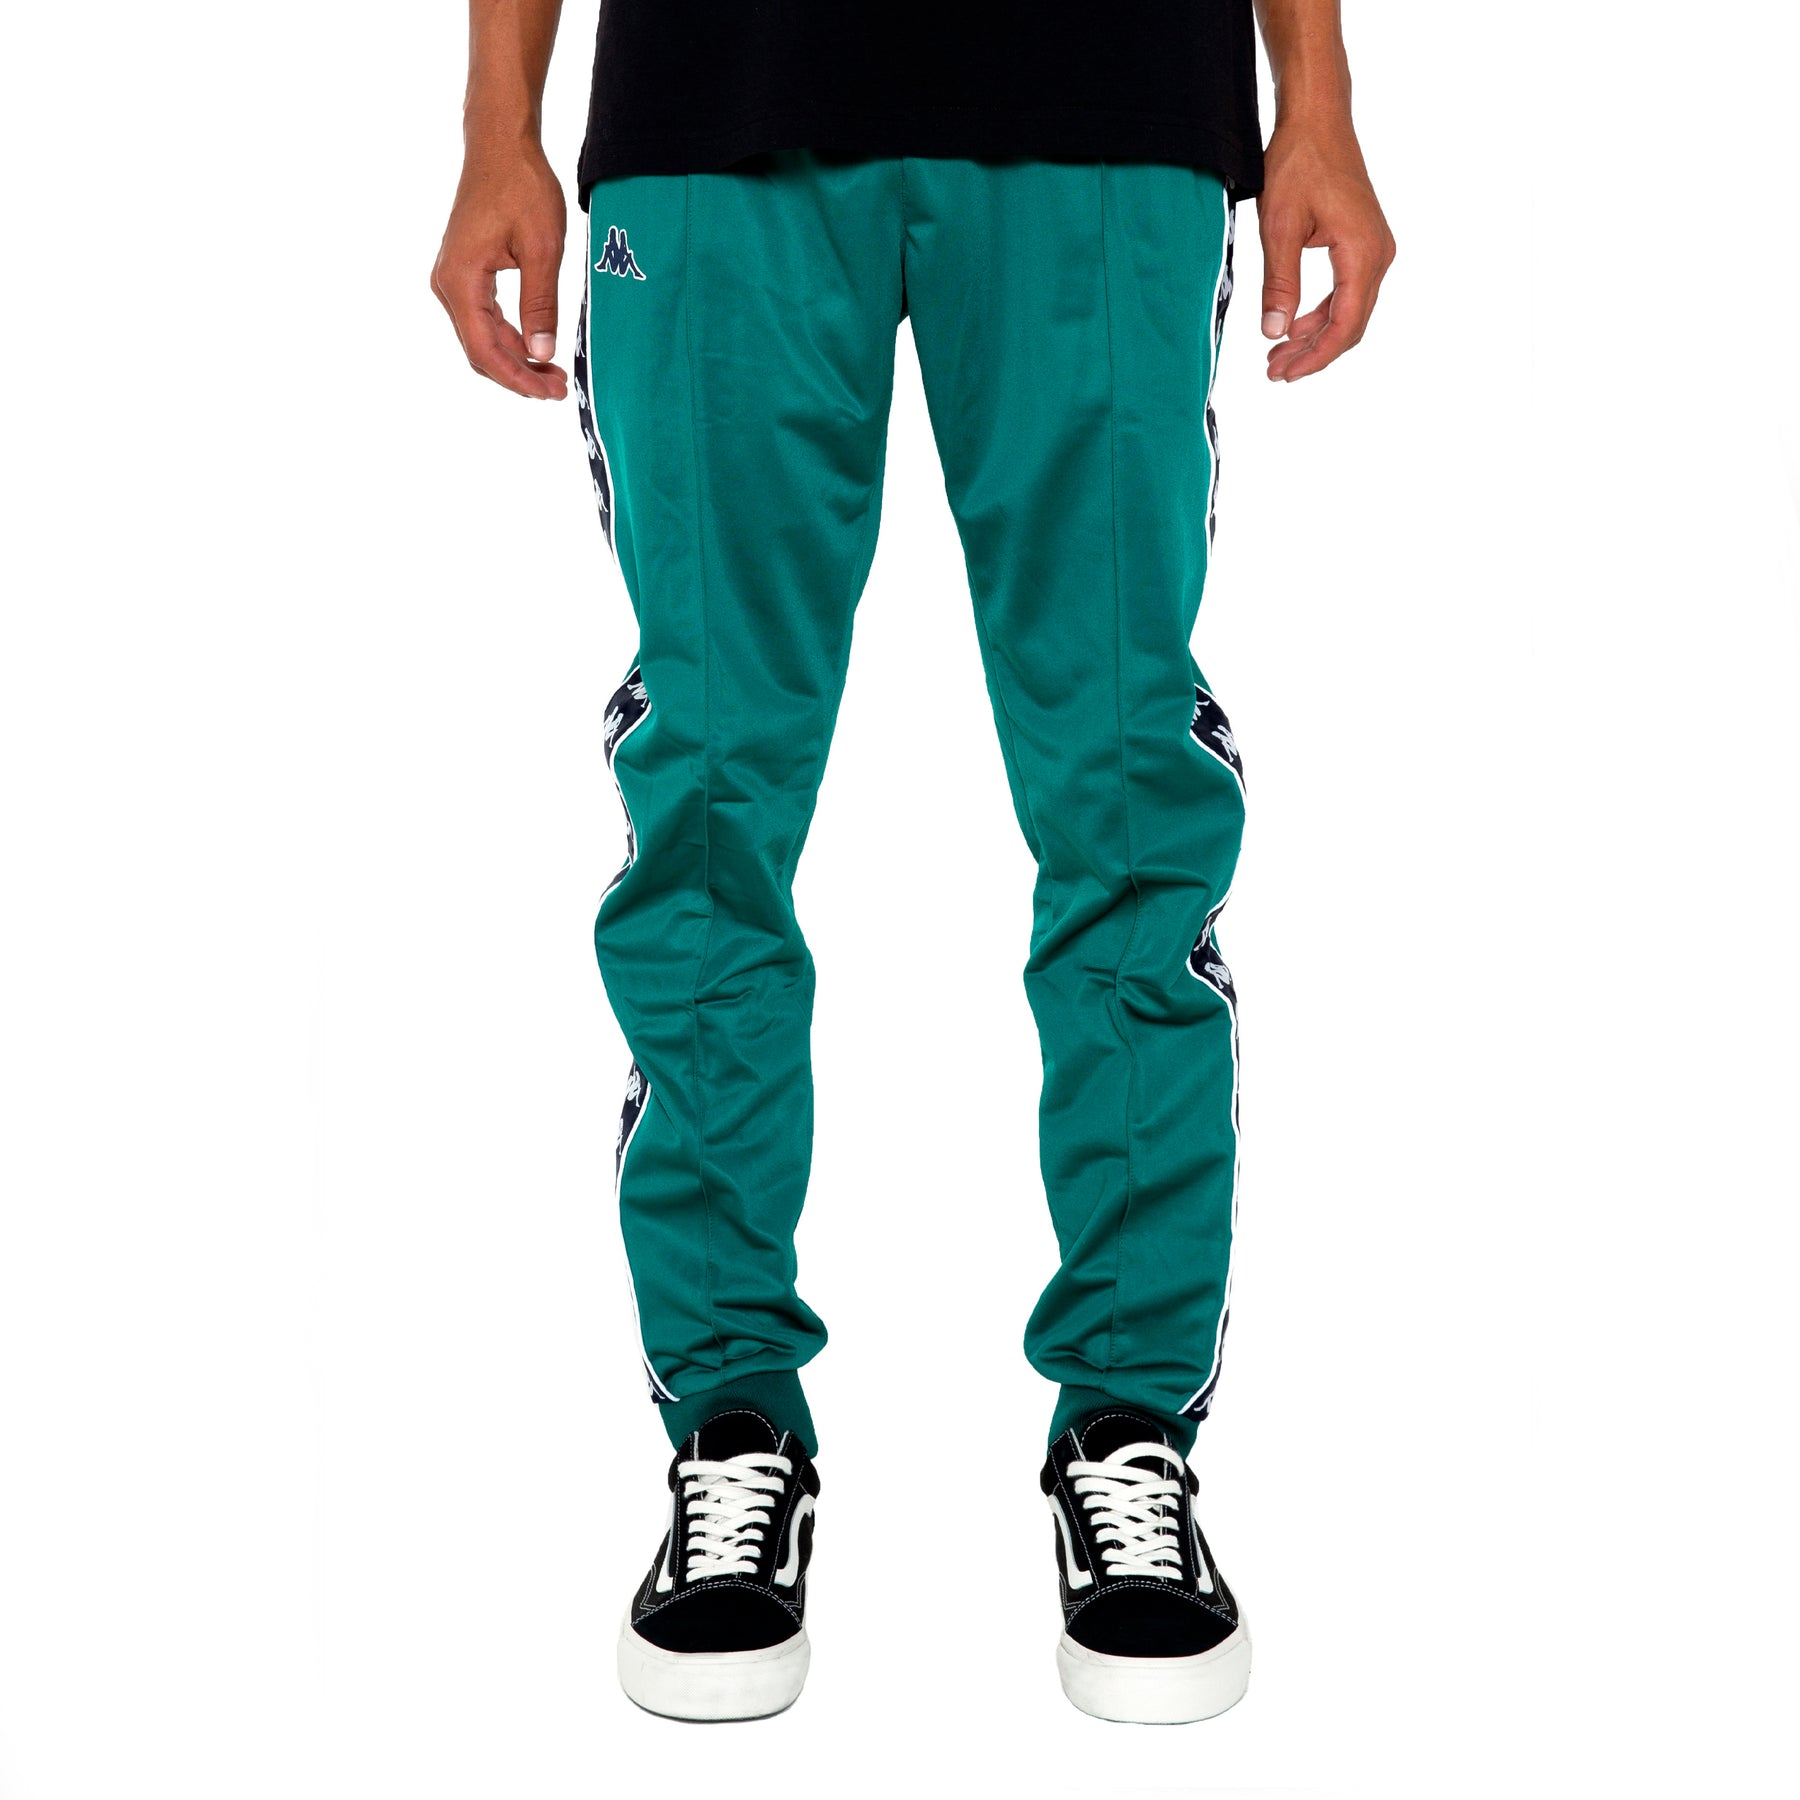 f199b148 222 Banda Rastoria Slim Green Blue Pants – Kappa USA